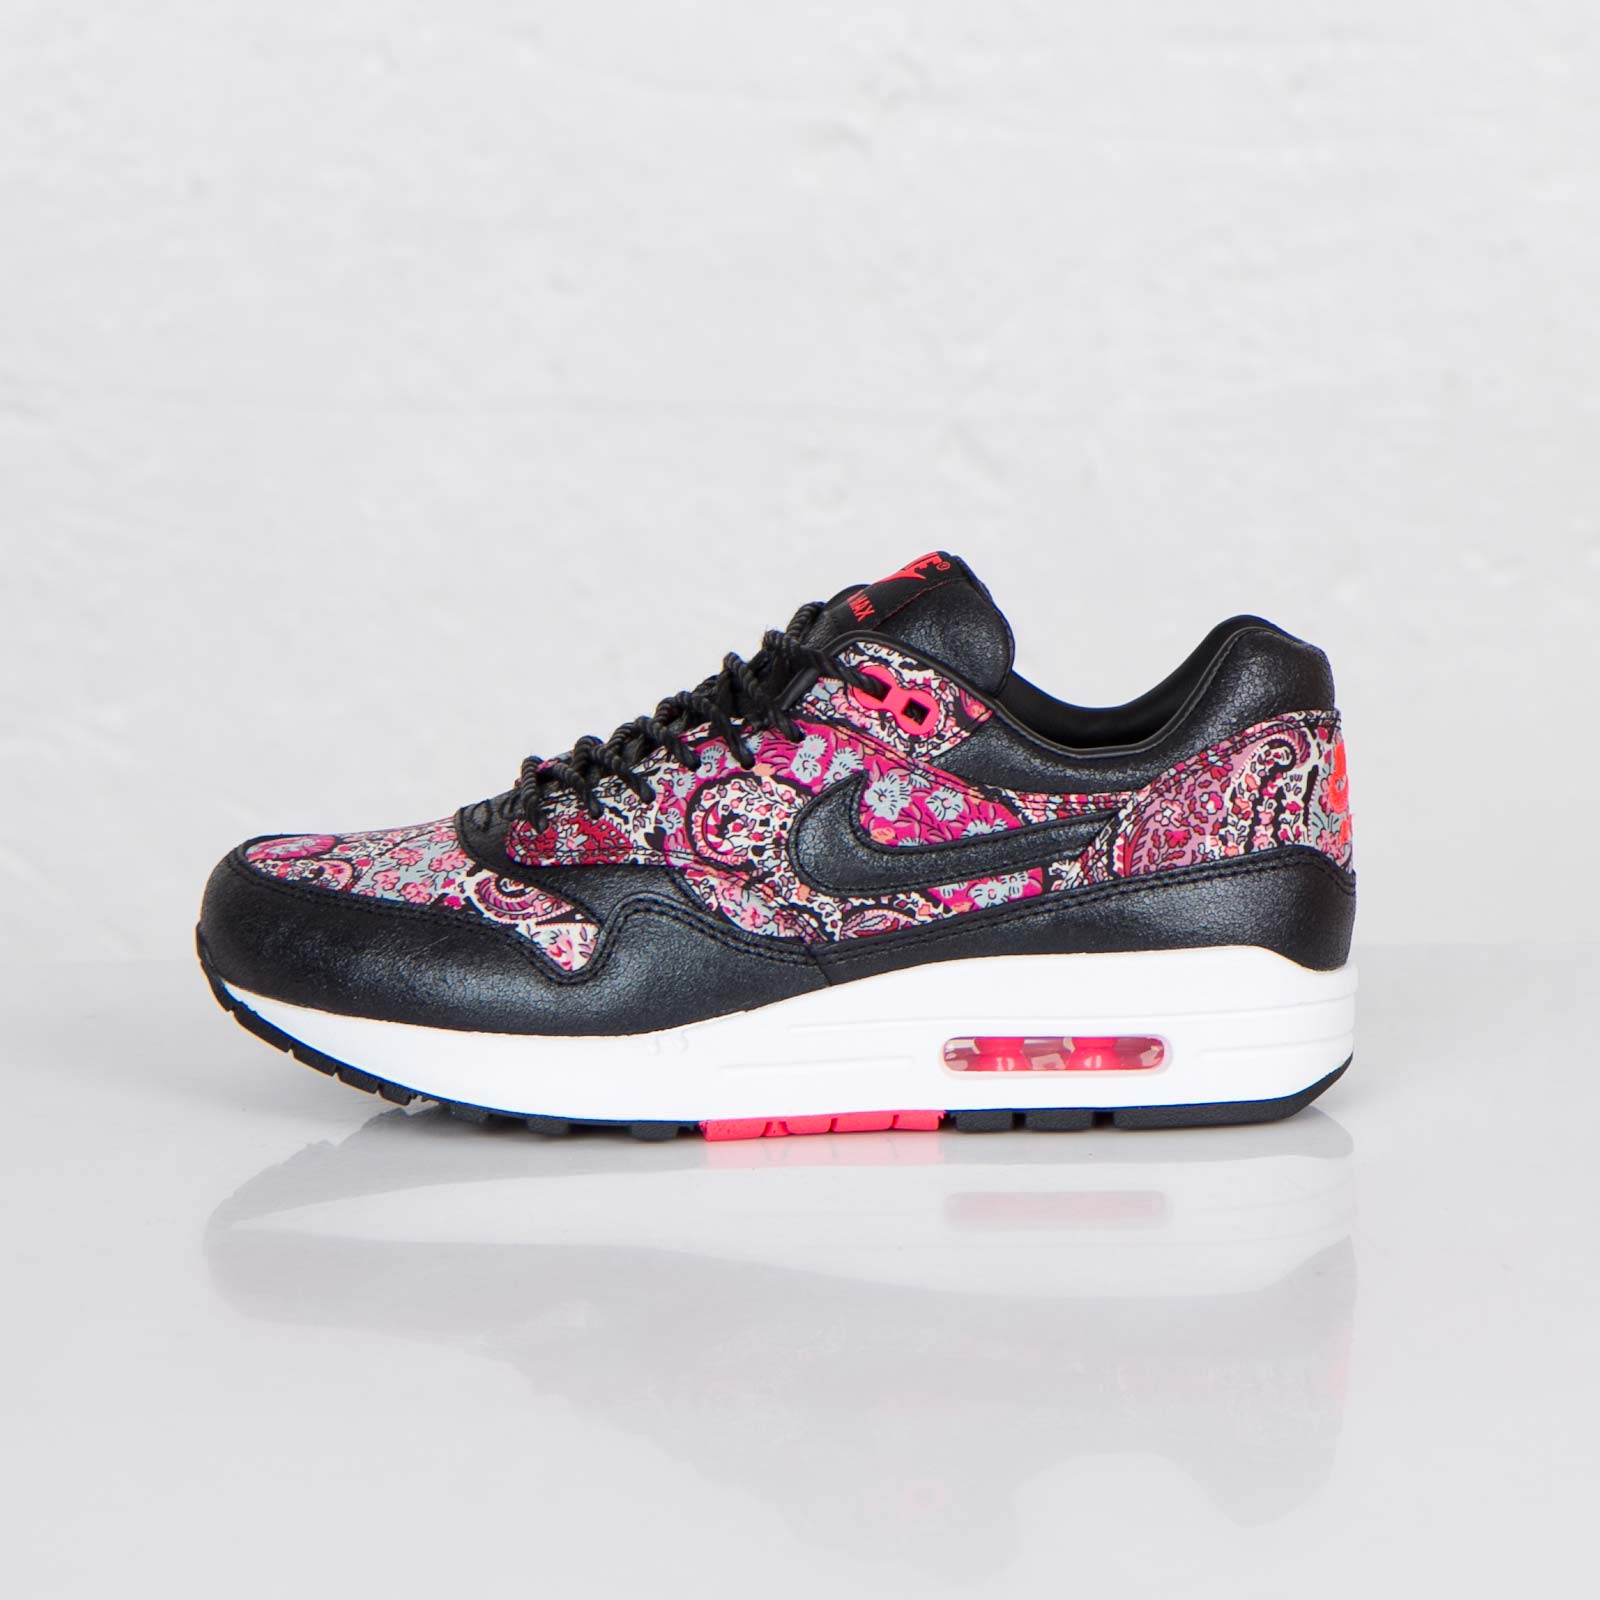 sports shoes 0c538 5d98d Nike Wmns Air Max 1 Liberty QS - 540855-006 - Sneakersnstuff   sneakers    streetwear online since 1999